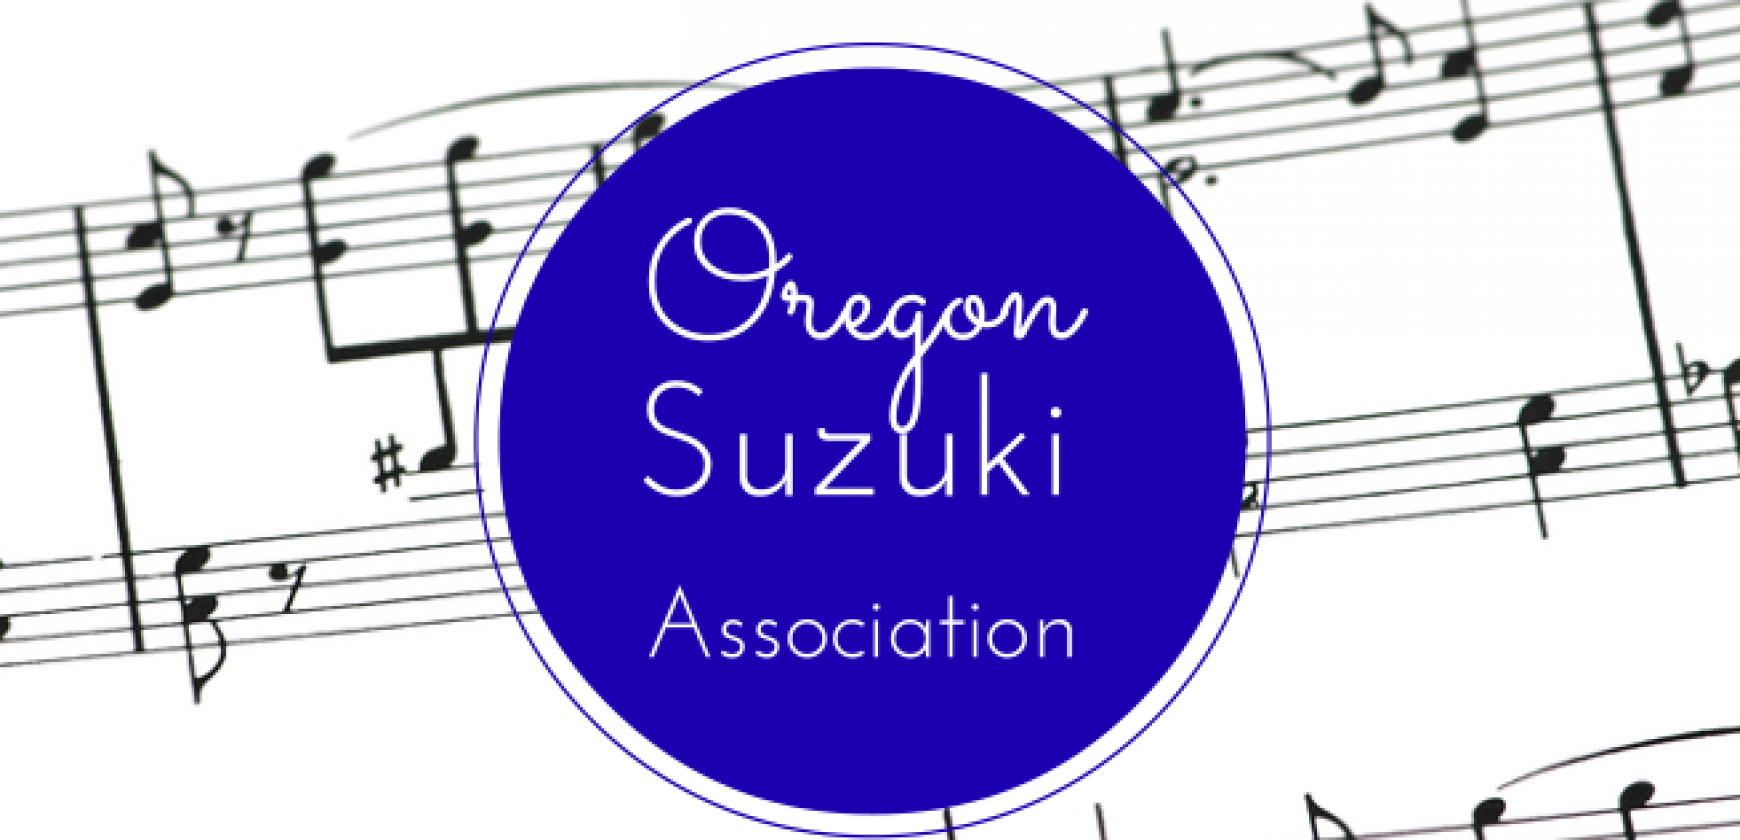 Oregon Suzuki Association